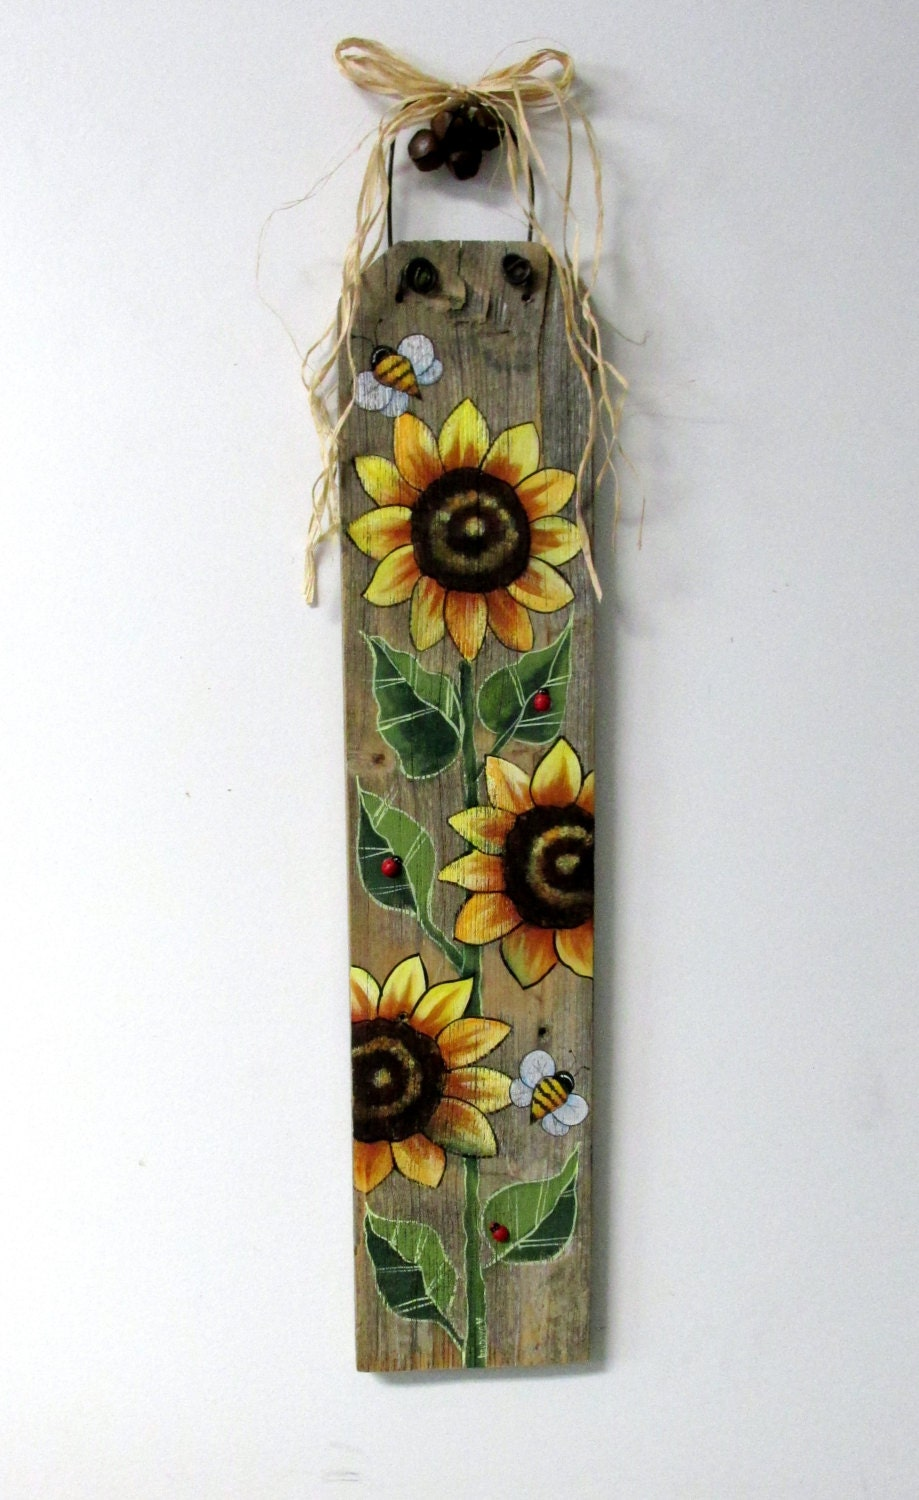 Sunflowers Yellow And Bumble Bees Hand Or Tole Painted On